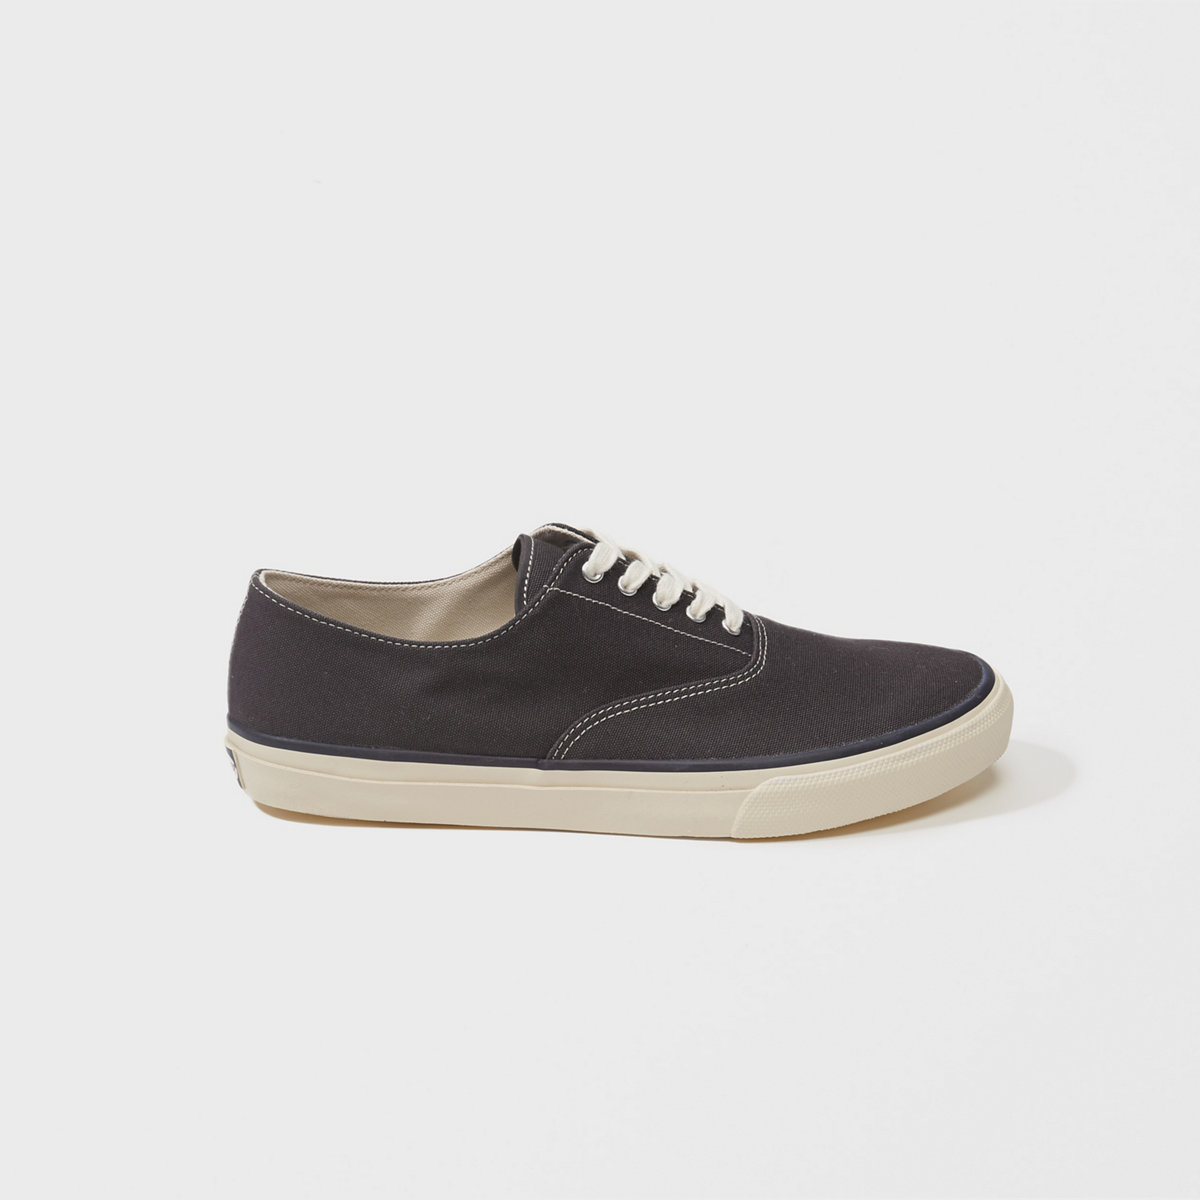 Sperry Cloud CVO Shoes